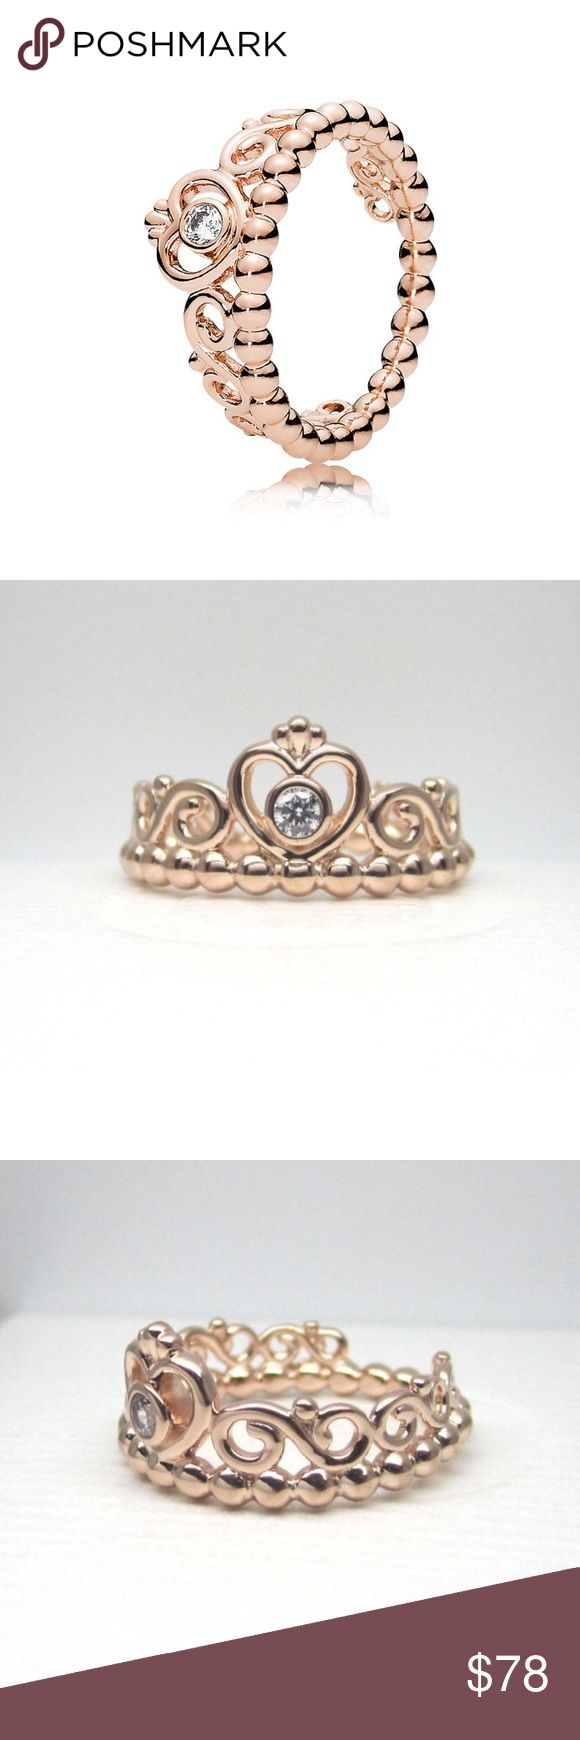 Pandora Princess Rose Gold Ring Pandora Princess Rose Gold Ring Authentic & Brand New Pandora Princess Rose Gold Ring in choice of size: -5/50 -6/52 -7/54 -7.5/56 -8.5/58 = Retails for $90 + tax in stores Ring is Sold out in stores! Comes with Pandora paper box for gifting and making this the perfect gift for any occasion. If you are searching for something specific in Pandora please let me know and I'll do my best to find it for you at the best price possible. Pandora Jewelry Rings